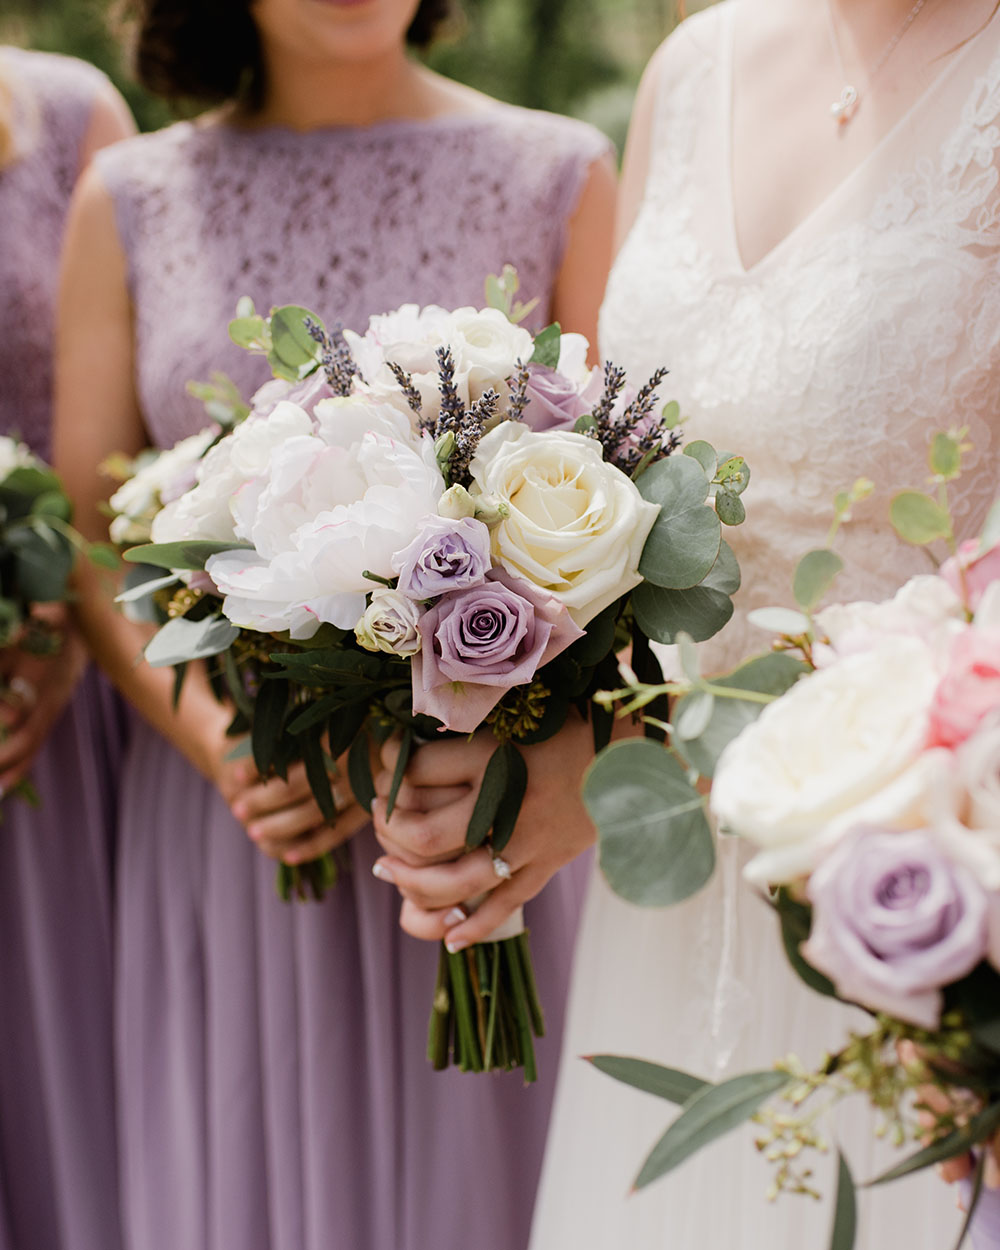 Bride holding a bouquet of flowers .